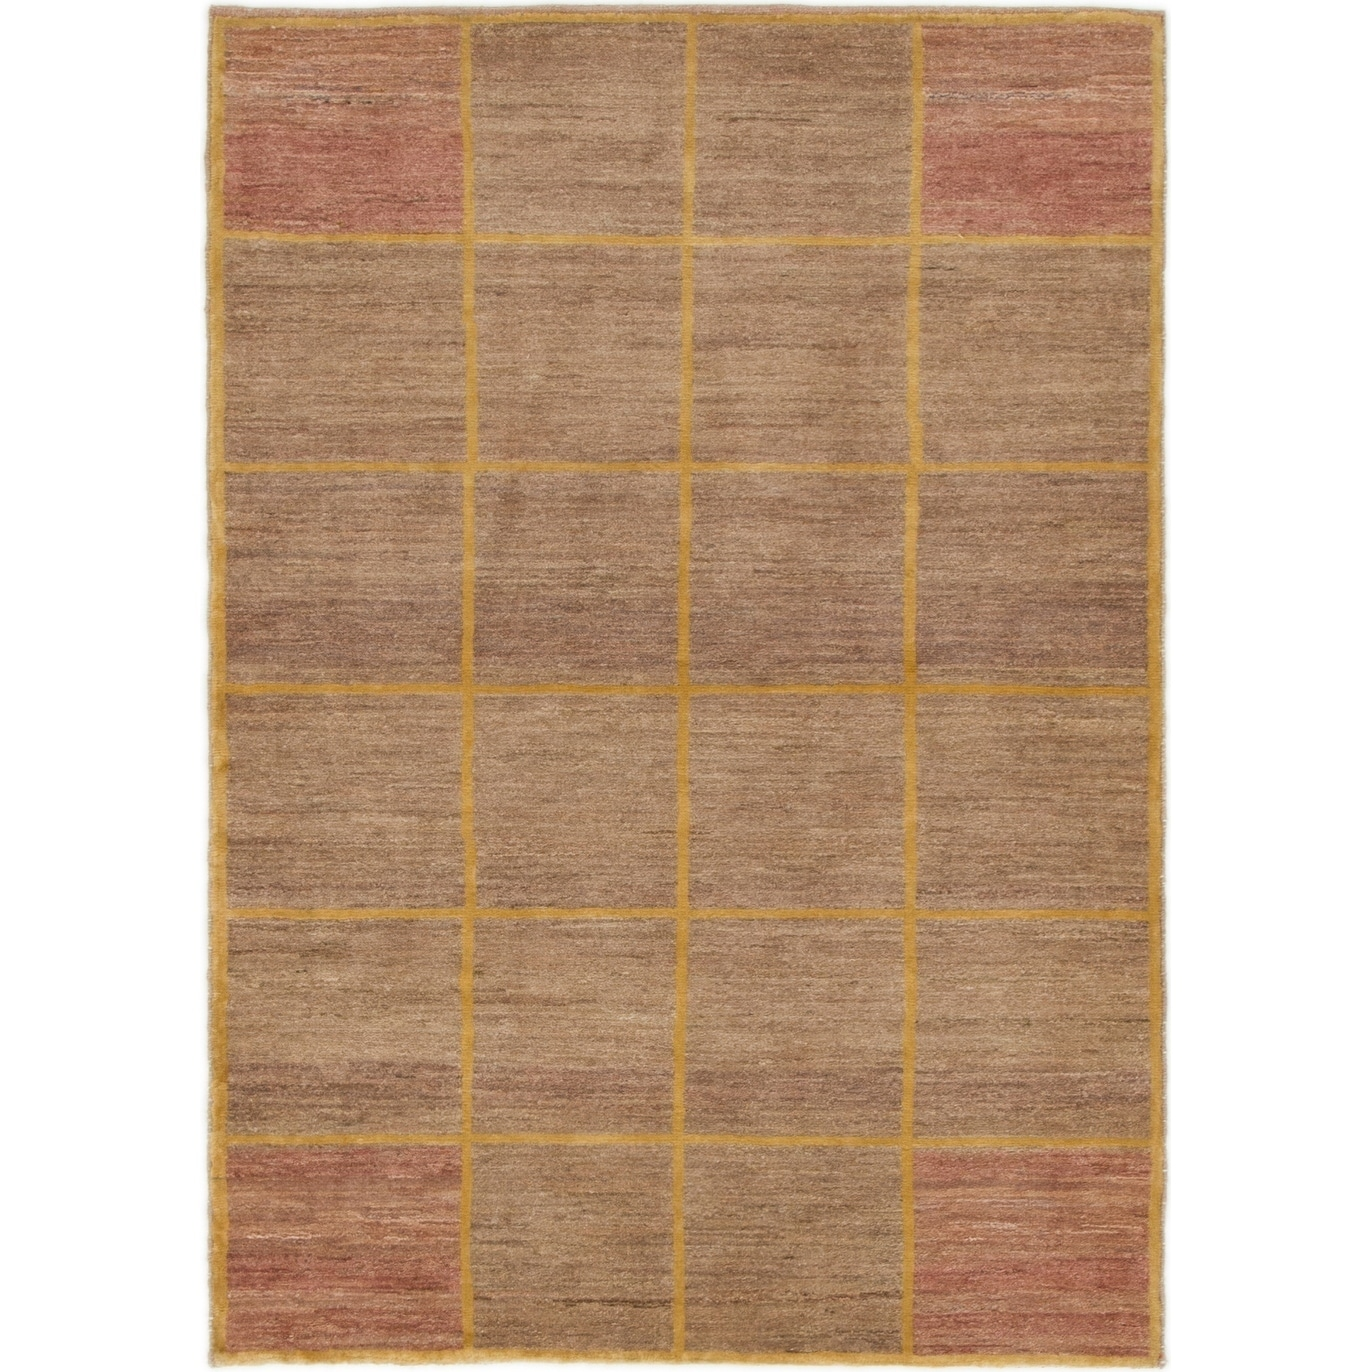 Hand Knotted Kashkuli Gabbeh Wool Area Rug - 3 6 x 5 (Light brown - 3 6 x 5)